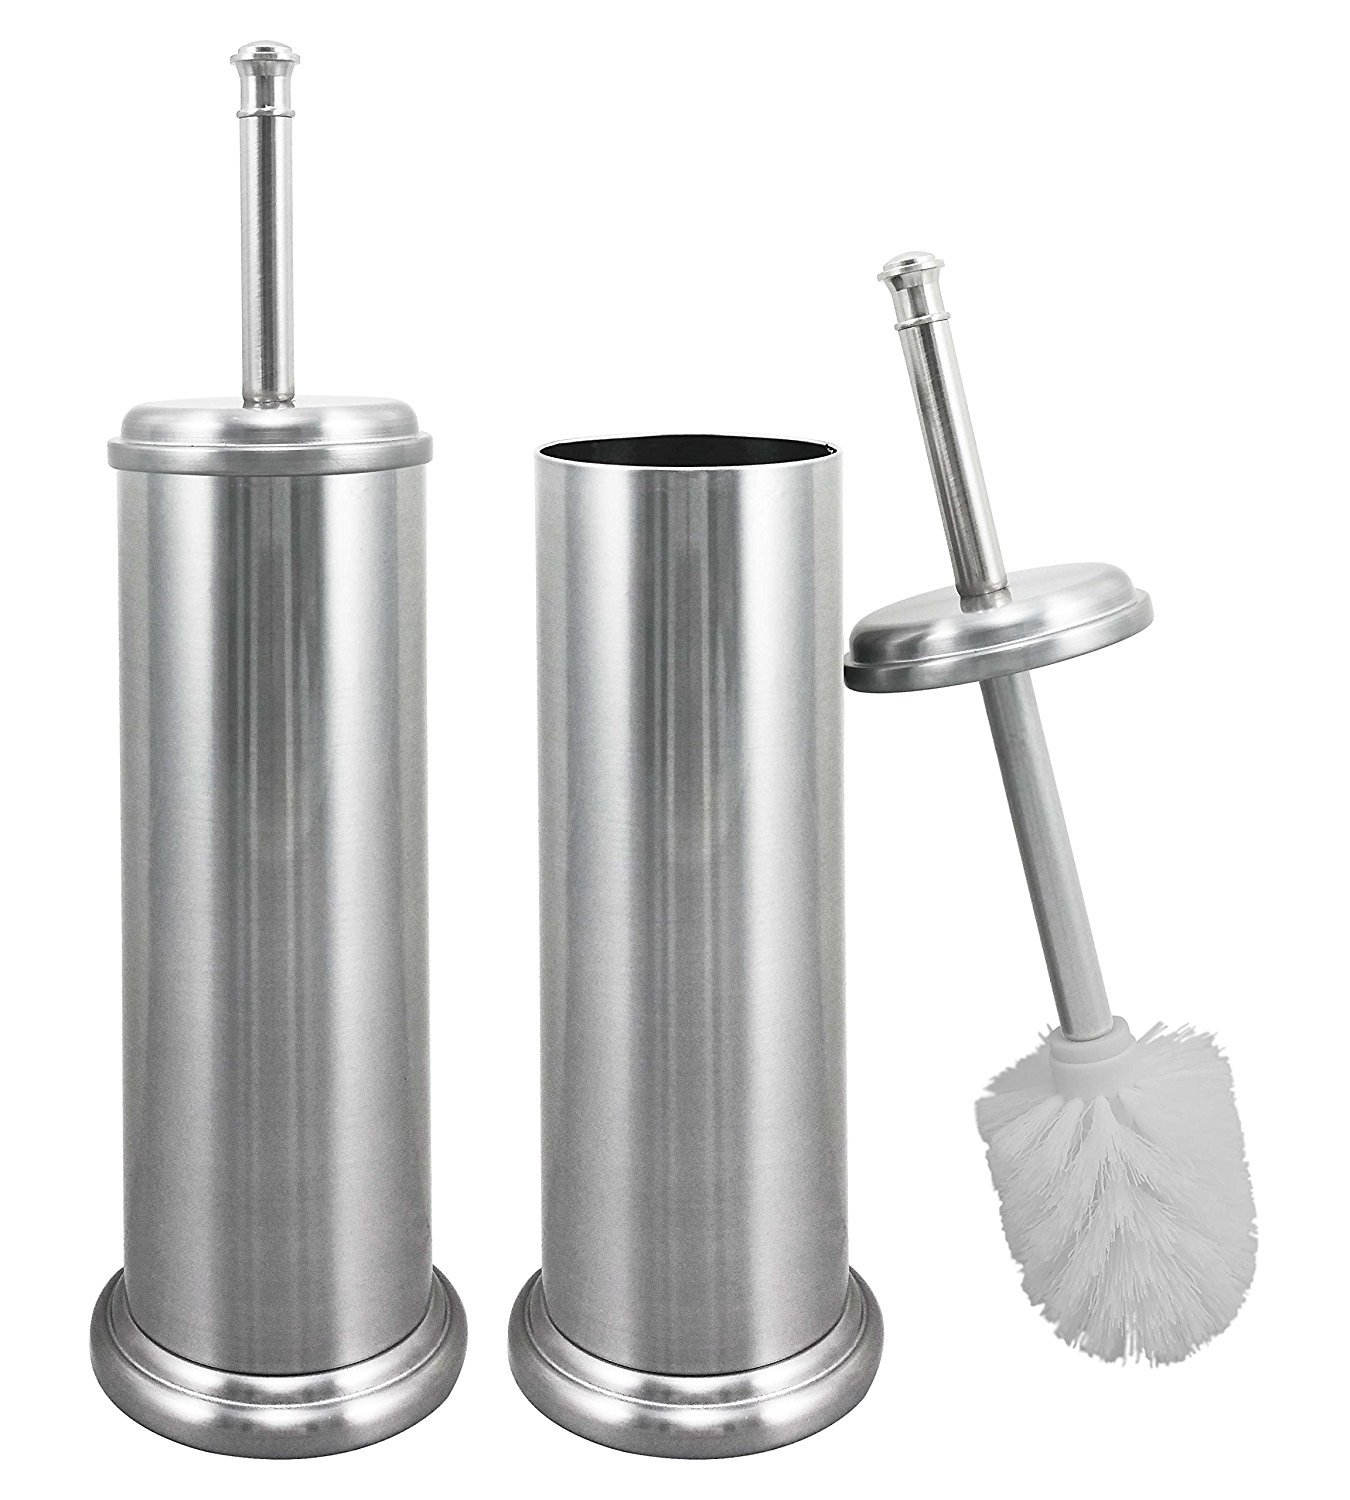 LDR Toilet Brush and Canister Metal Stem - Brushed Nickel Finish - Rust Resistant Construction - Slim Compact Design for Small Spaces - 2 Pack